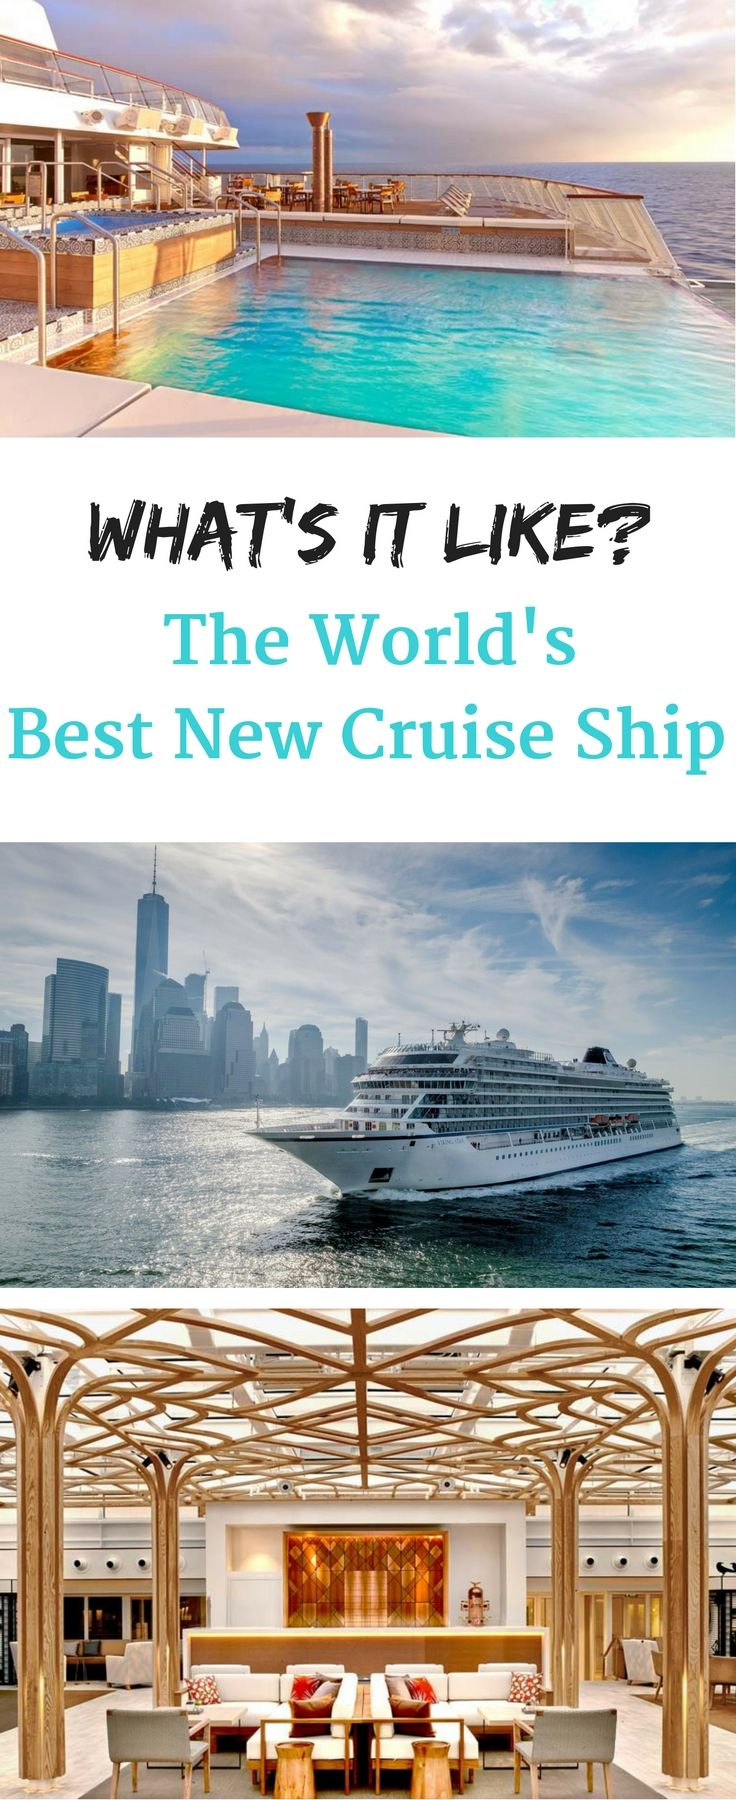 Best Find A Cruise Ideas On Pinterest Cruise Packing Crusie - Find cruises